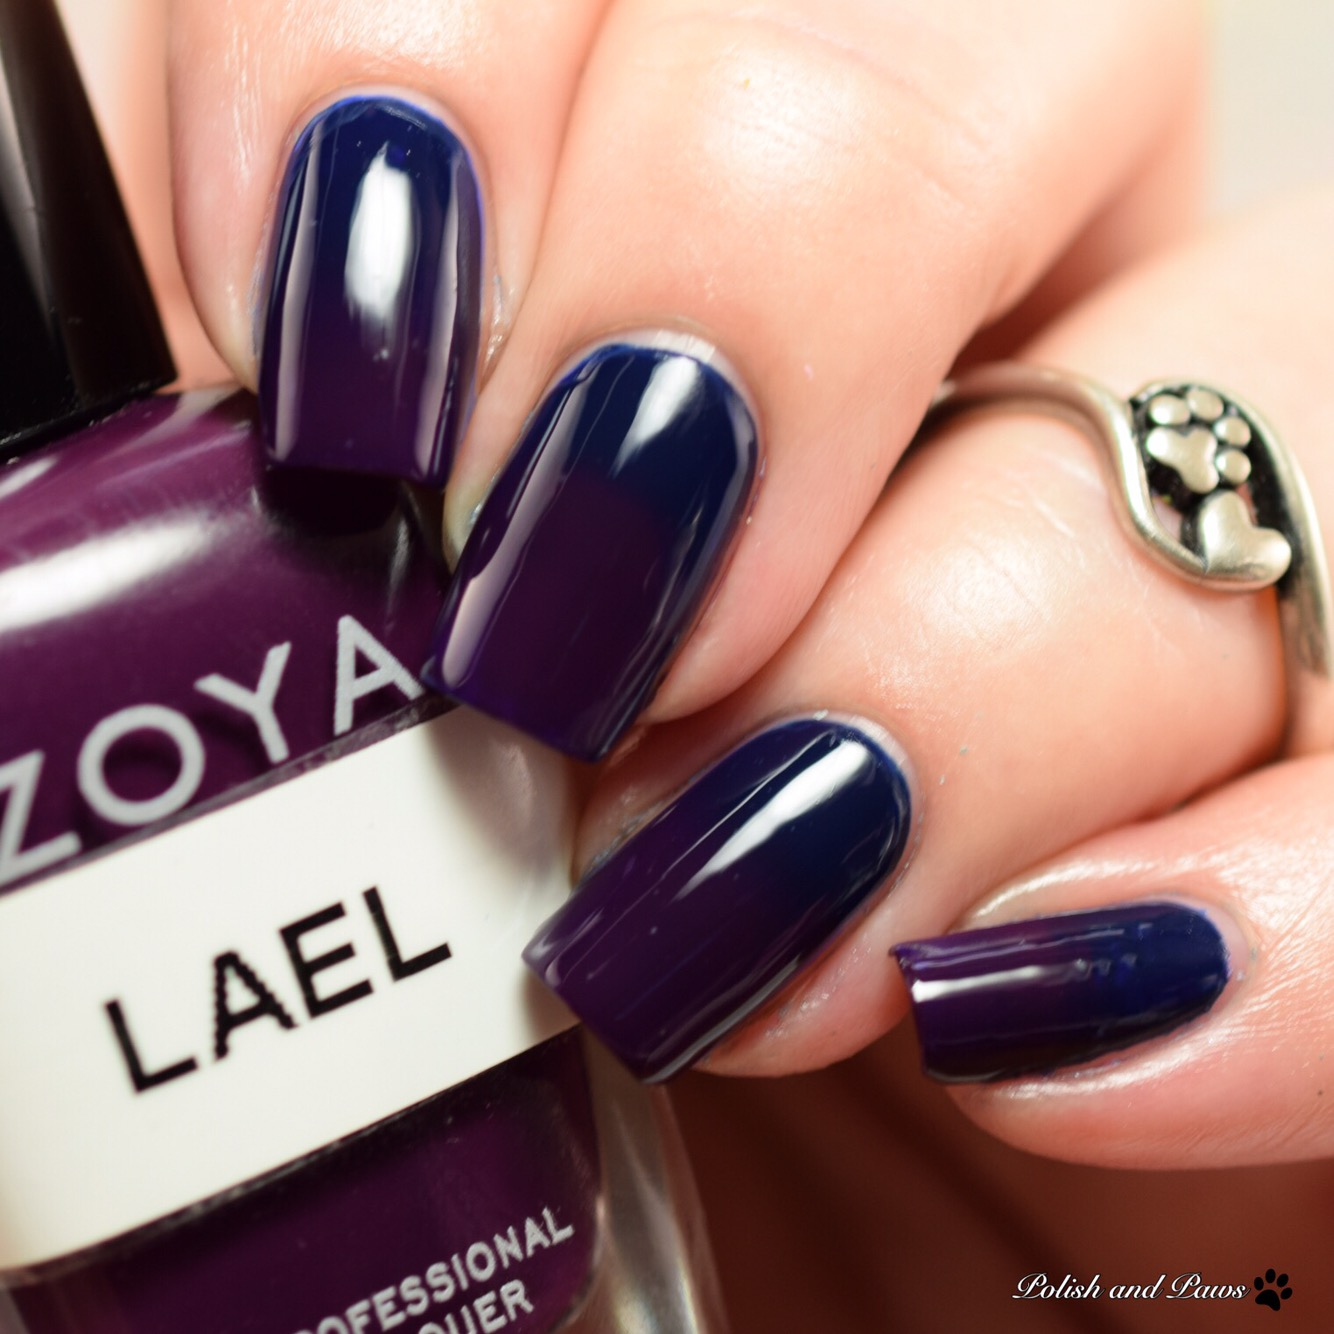 Zoya Lael with Zoya Ryan gradient